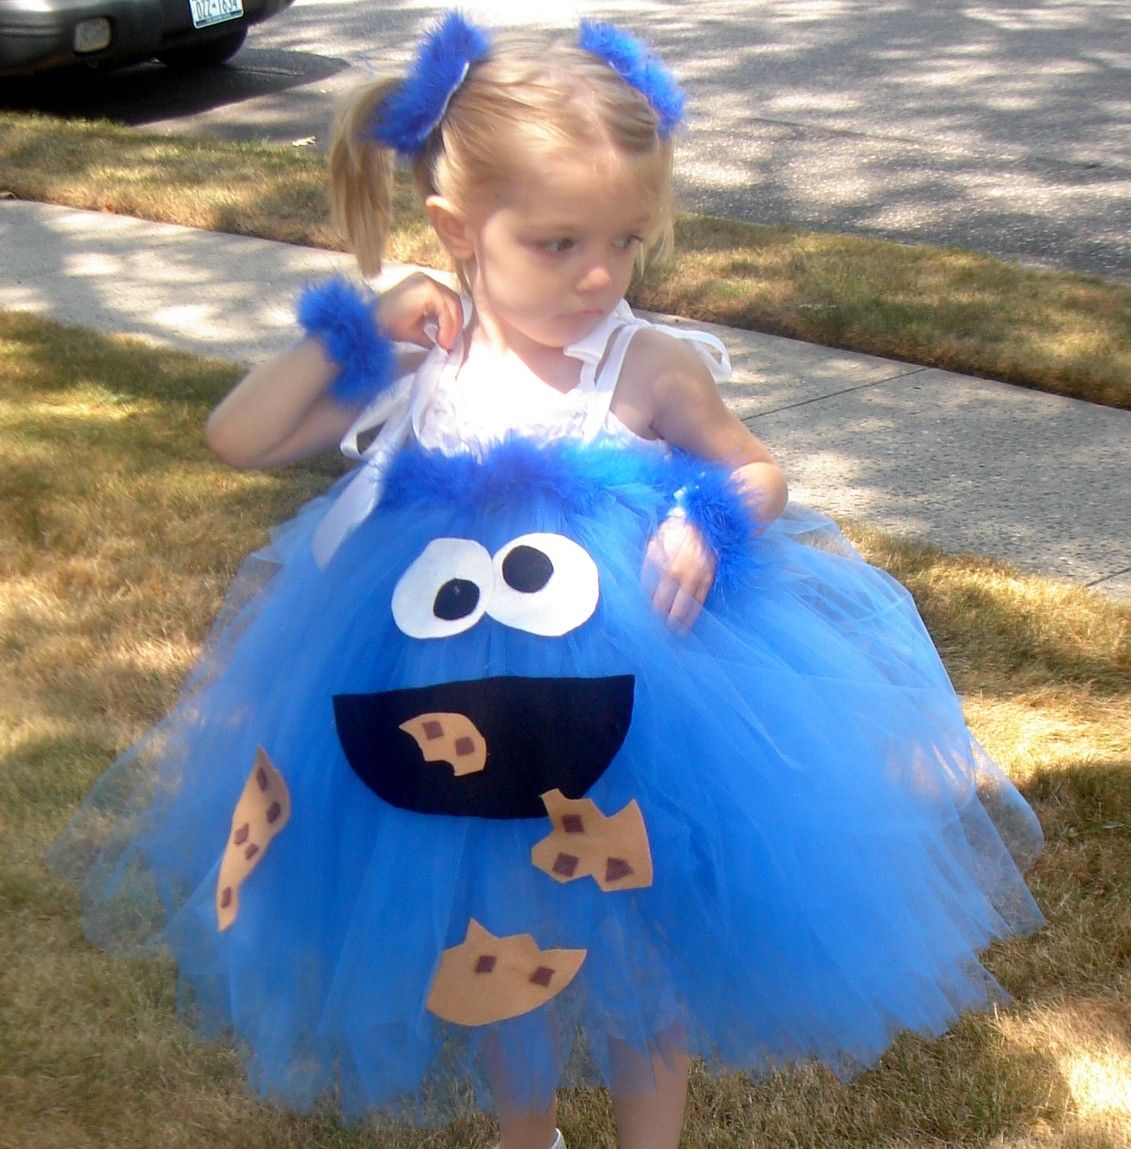 Cookie Monster Costume Idea Storybook Character Parade Idea For Kaylee Bug Cookie Monster Costume Monster Costumes Cute Costumes